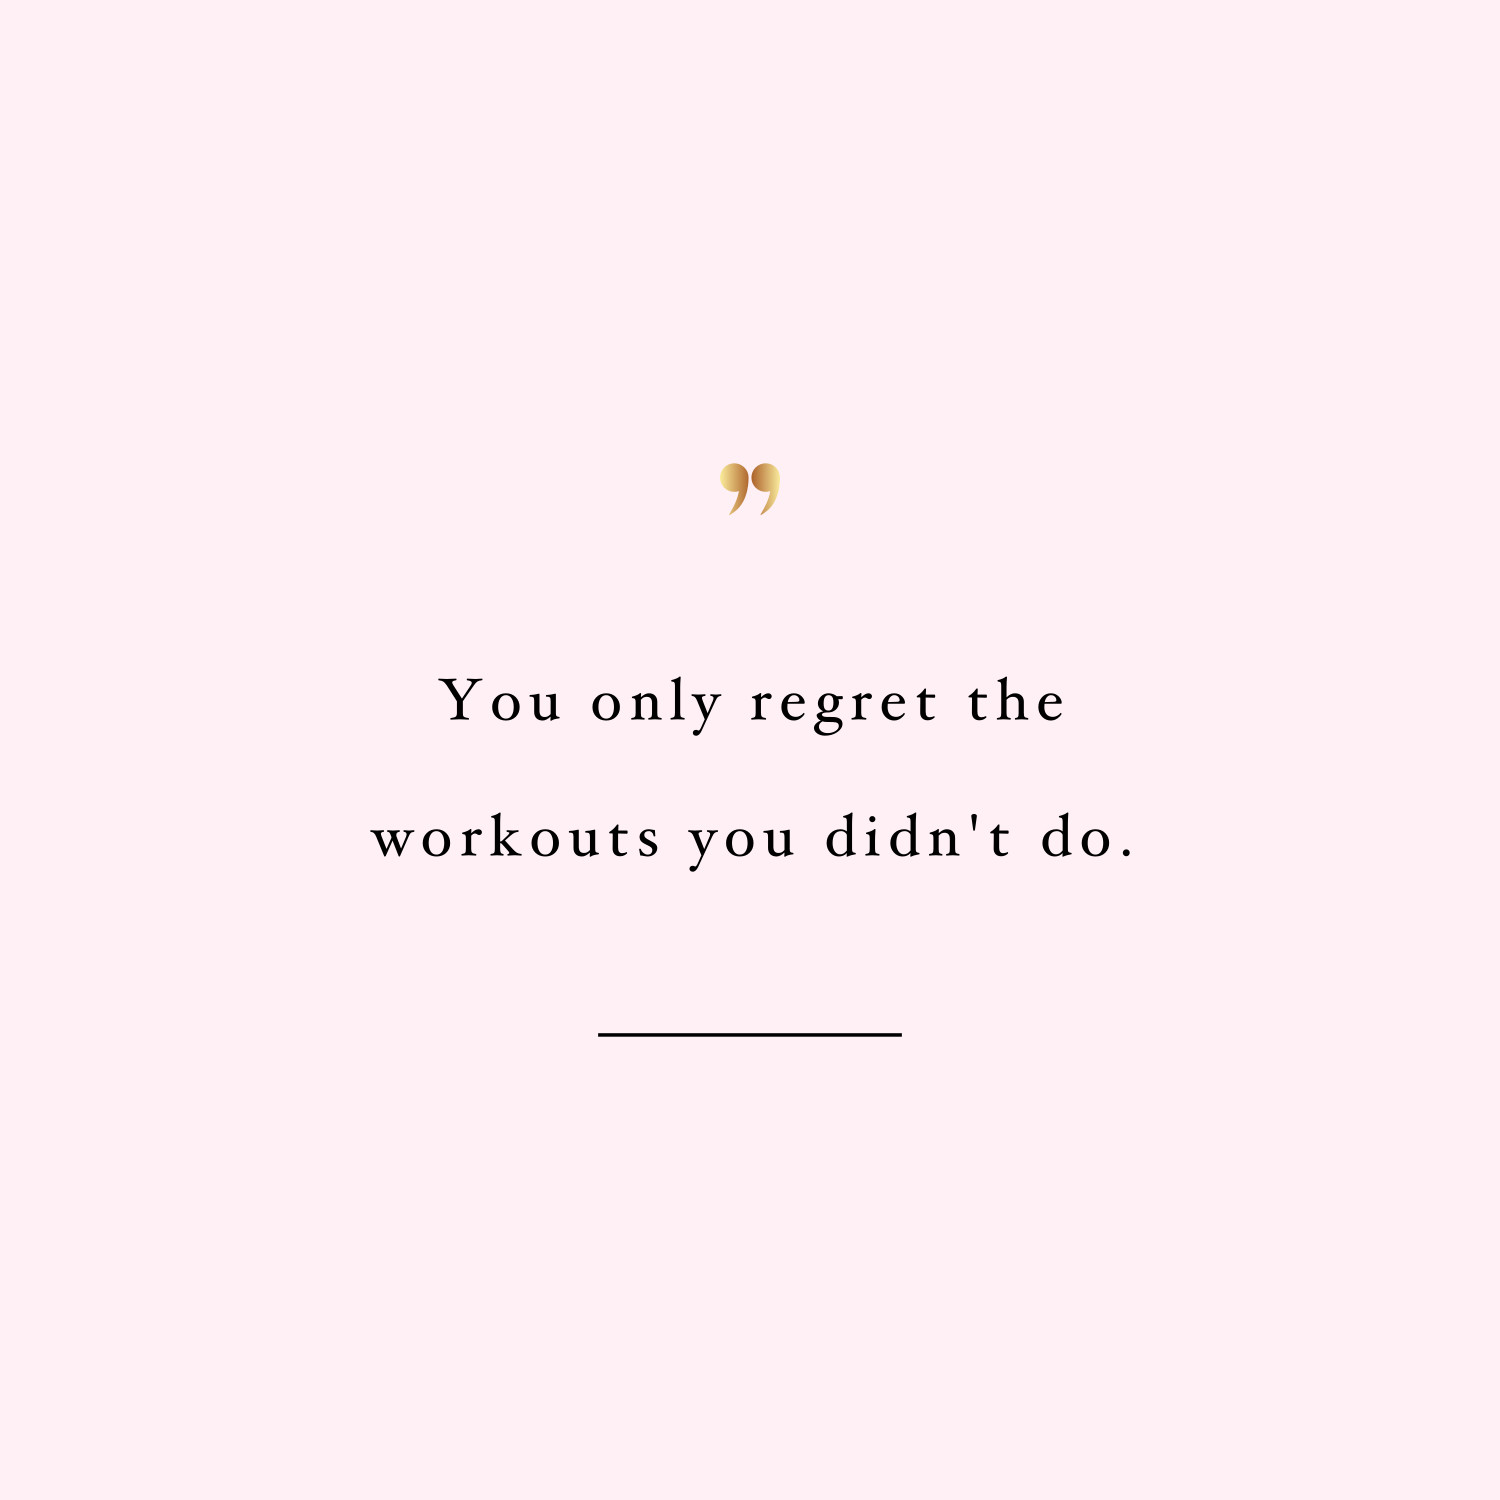 No regrets! Browse our collection of inspirational workout quotes and get instant fitness and weight loss motivation. Transform positive thoughts into positive actions and get fit, healthy and happy! https://www.spotebi.com/workout-motivation/inspirational-workout-quote-no-regrets/